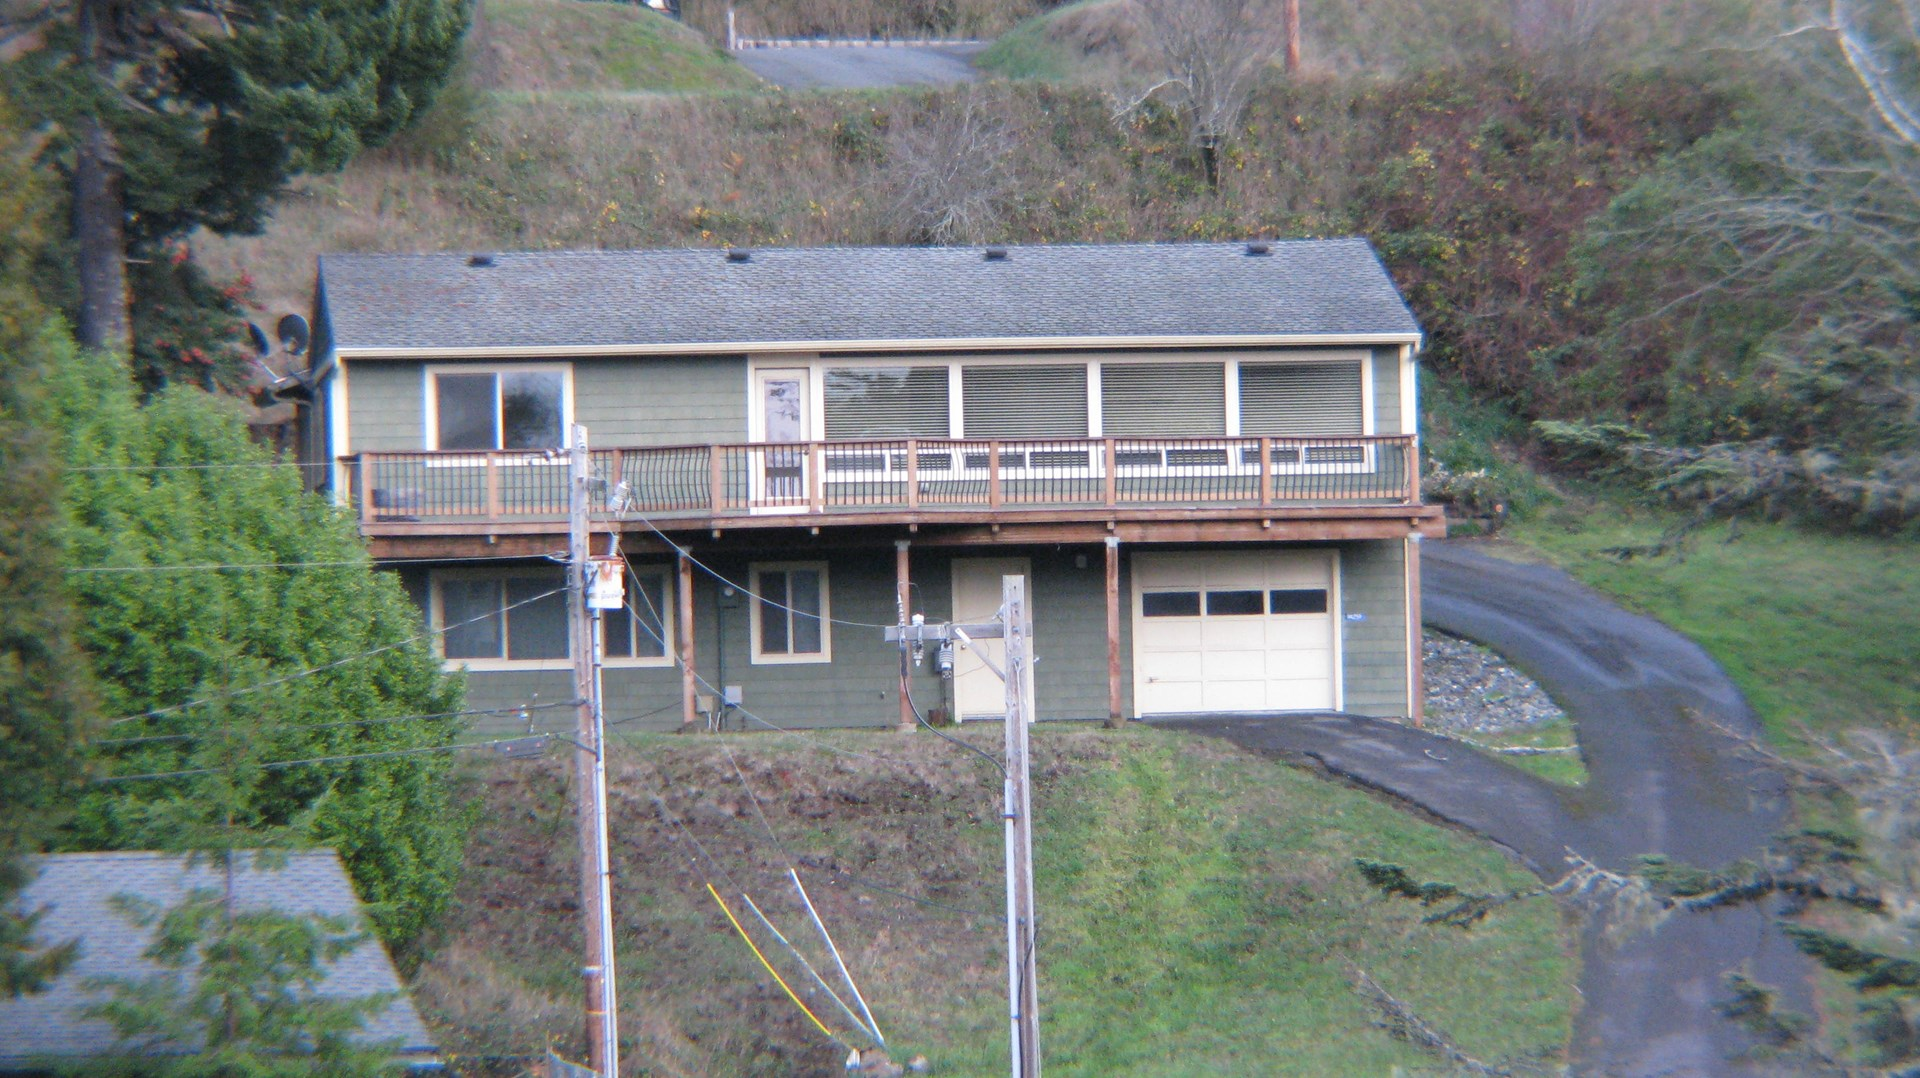 Coastal Oregon Rental Property for Sale